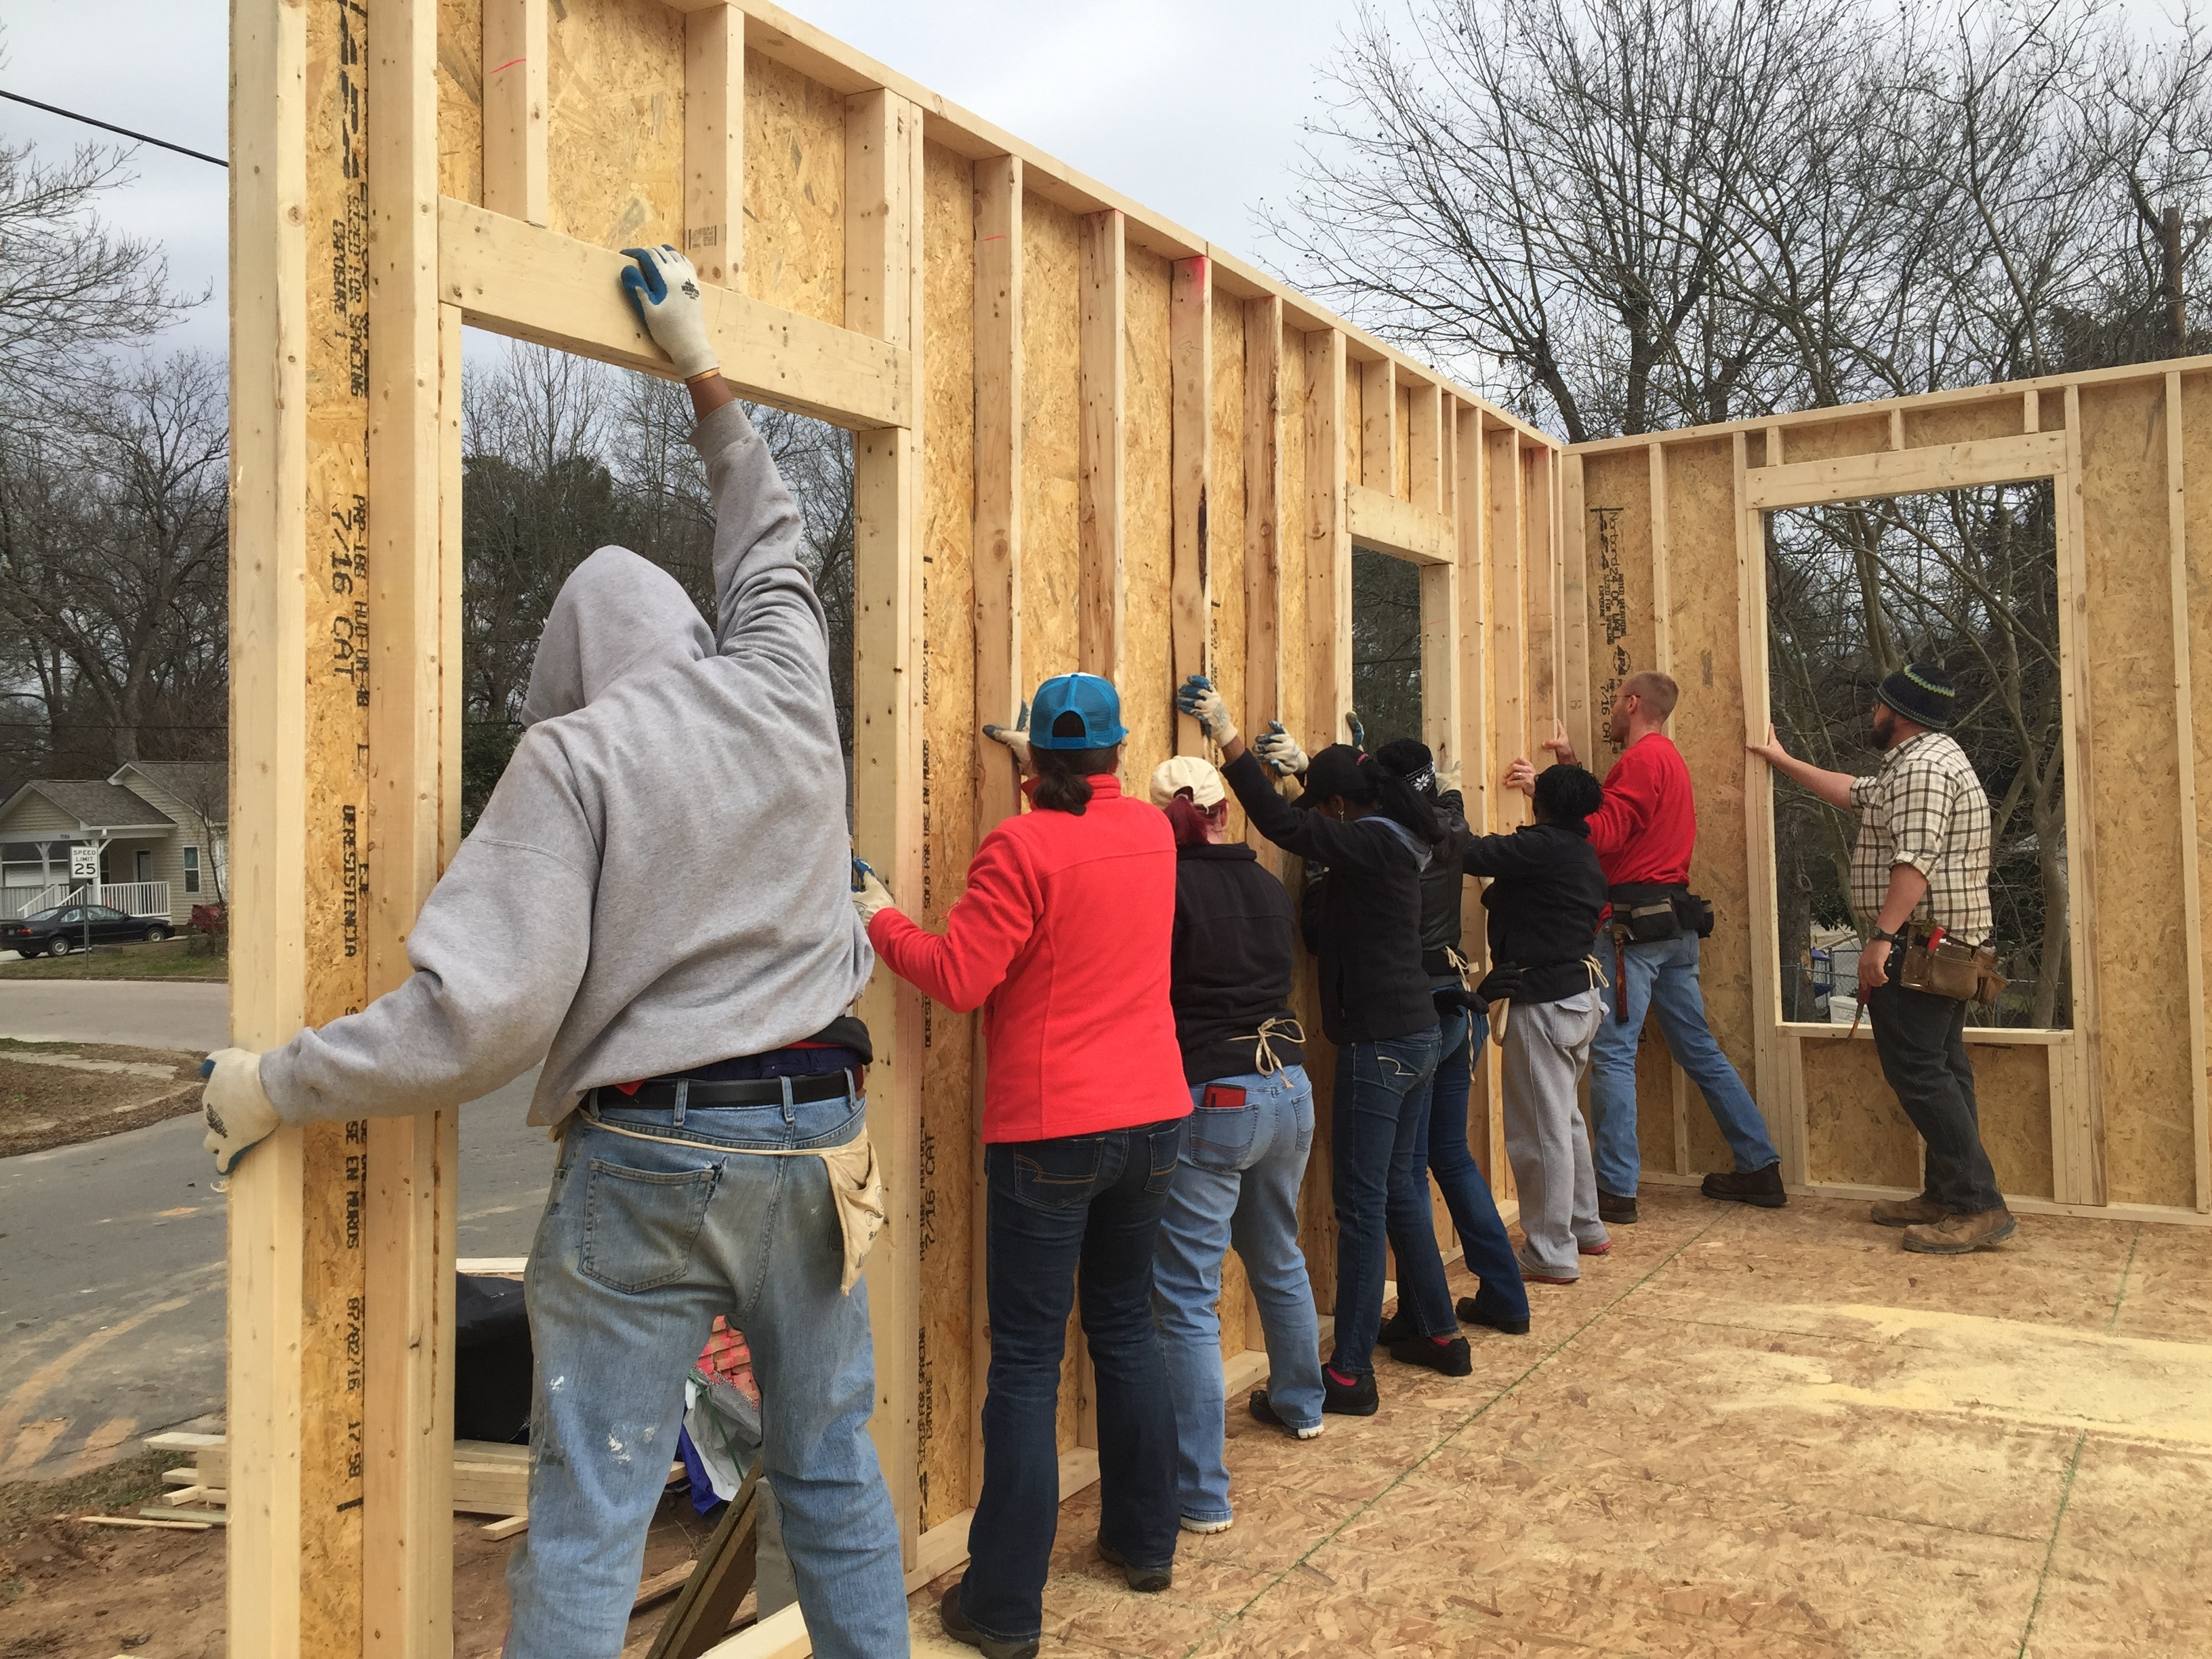 Six AgBiomers help raise walls on a habitat for humanity home along with Habitat volunteers.